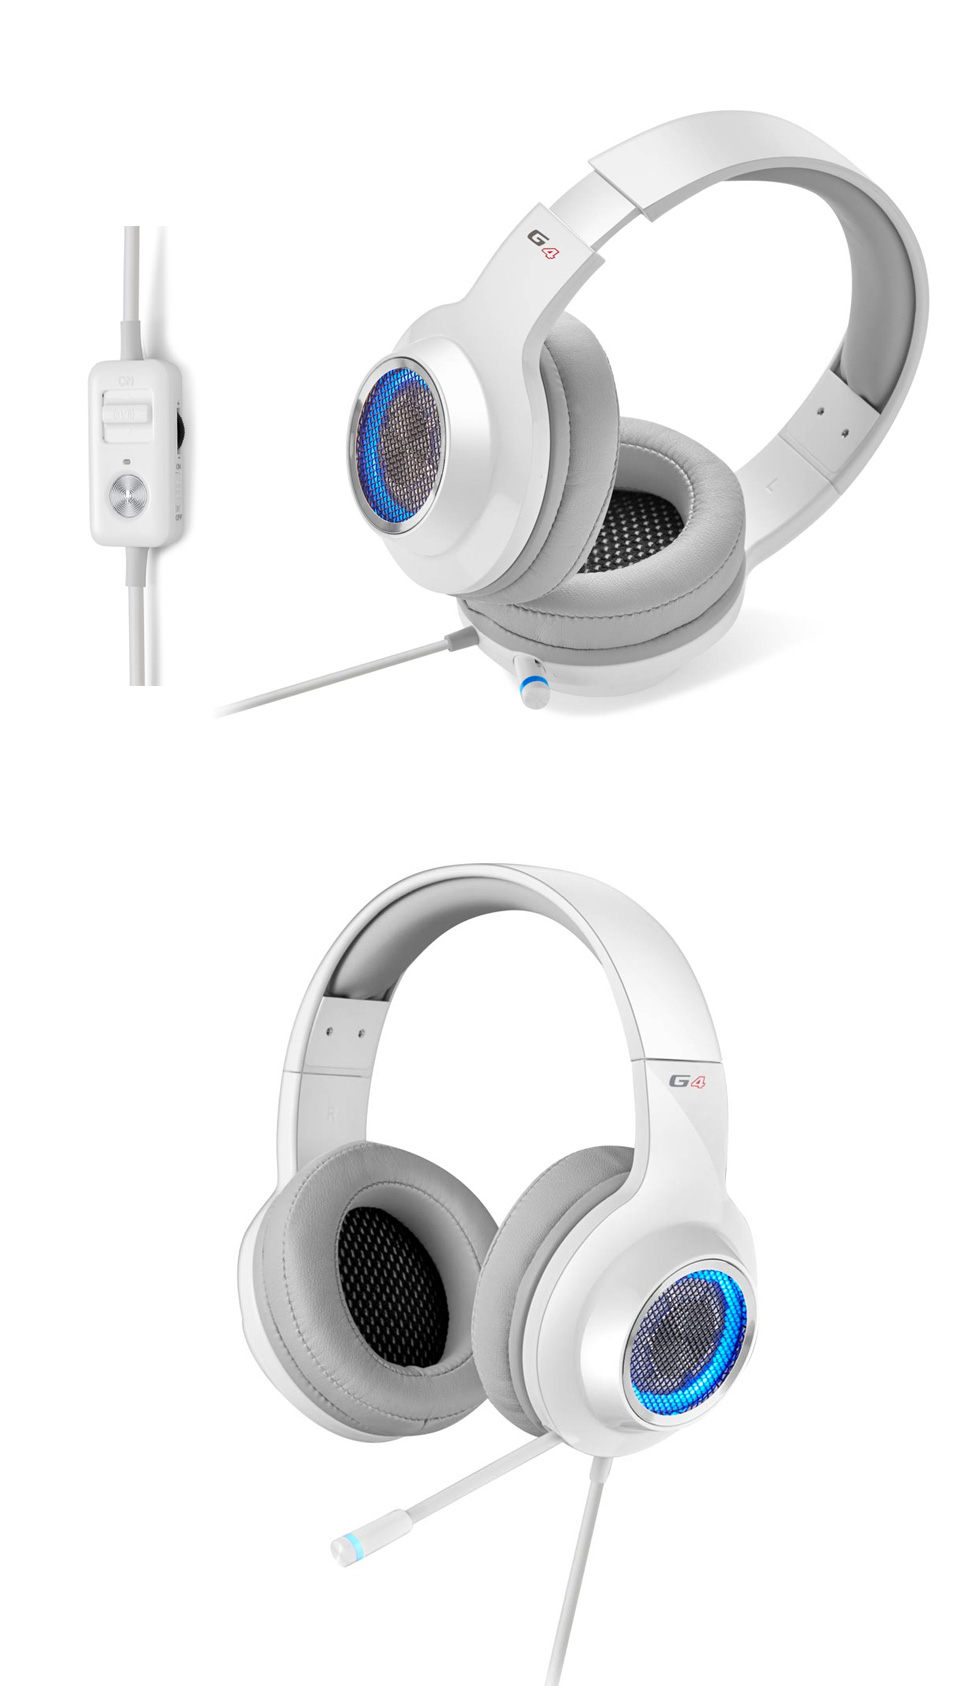 Edifier V4 (G4) 7.1 Virtual Surround Sound Gaming Headset White product